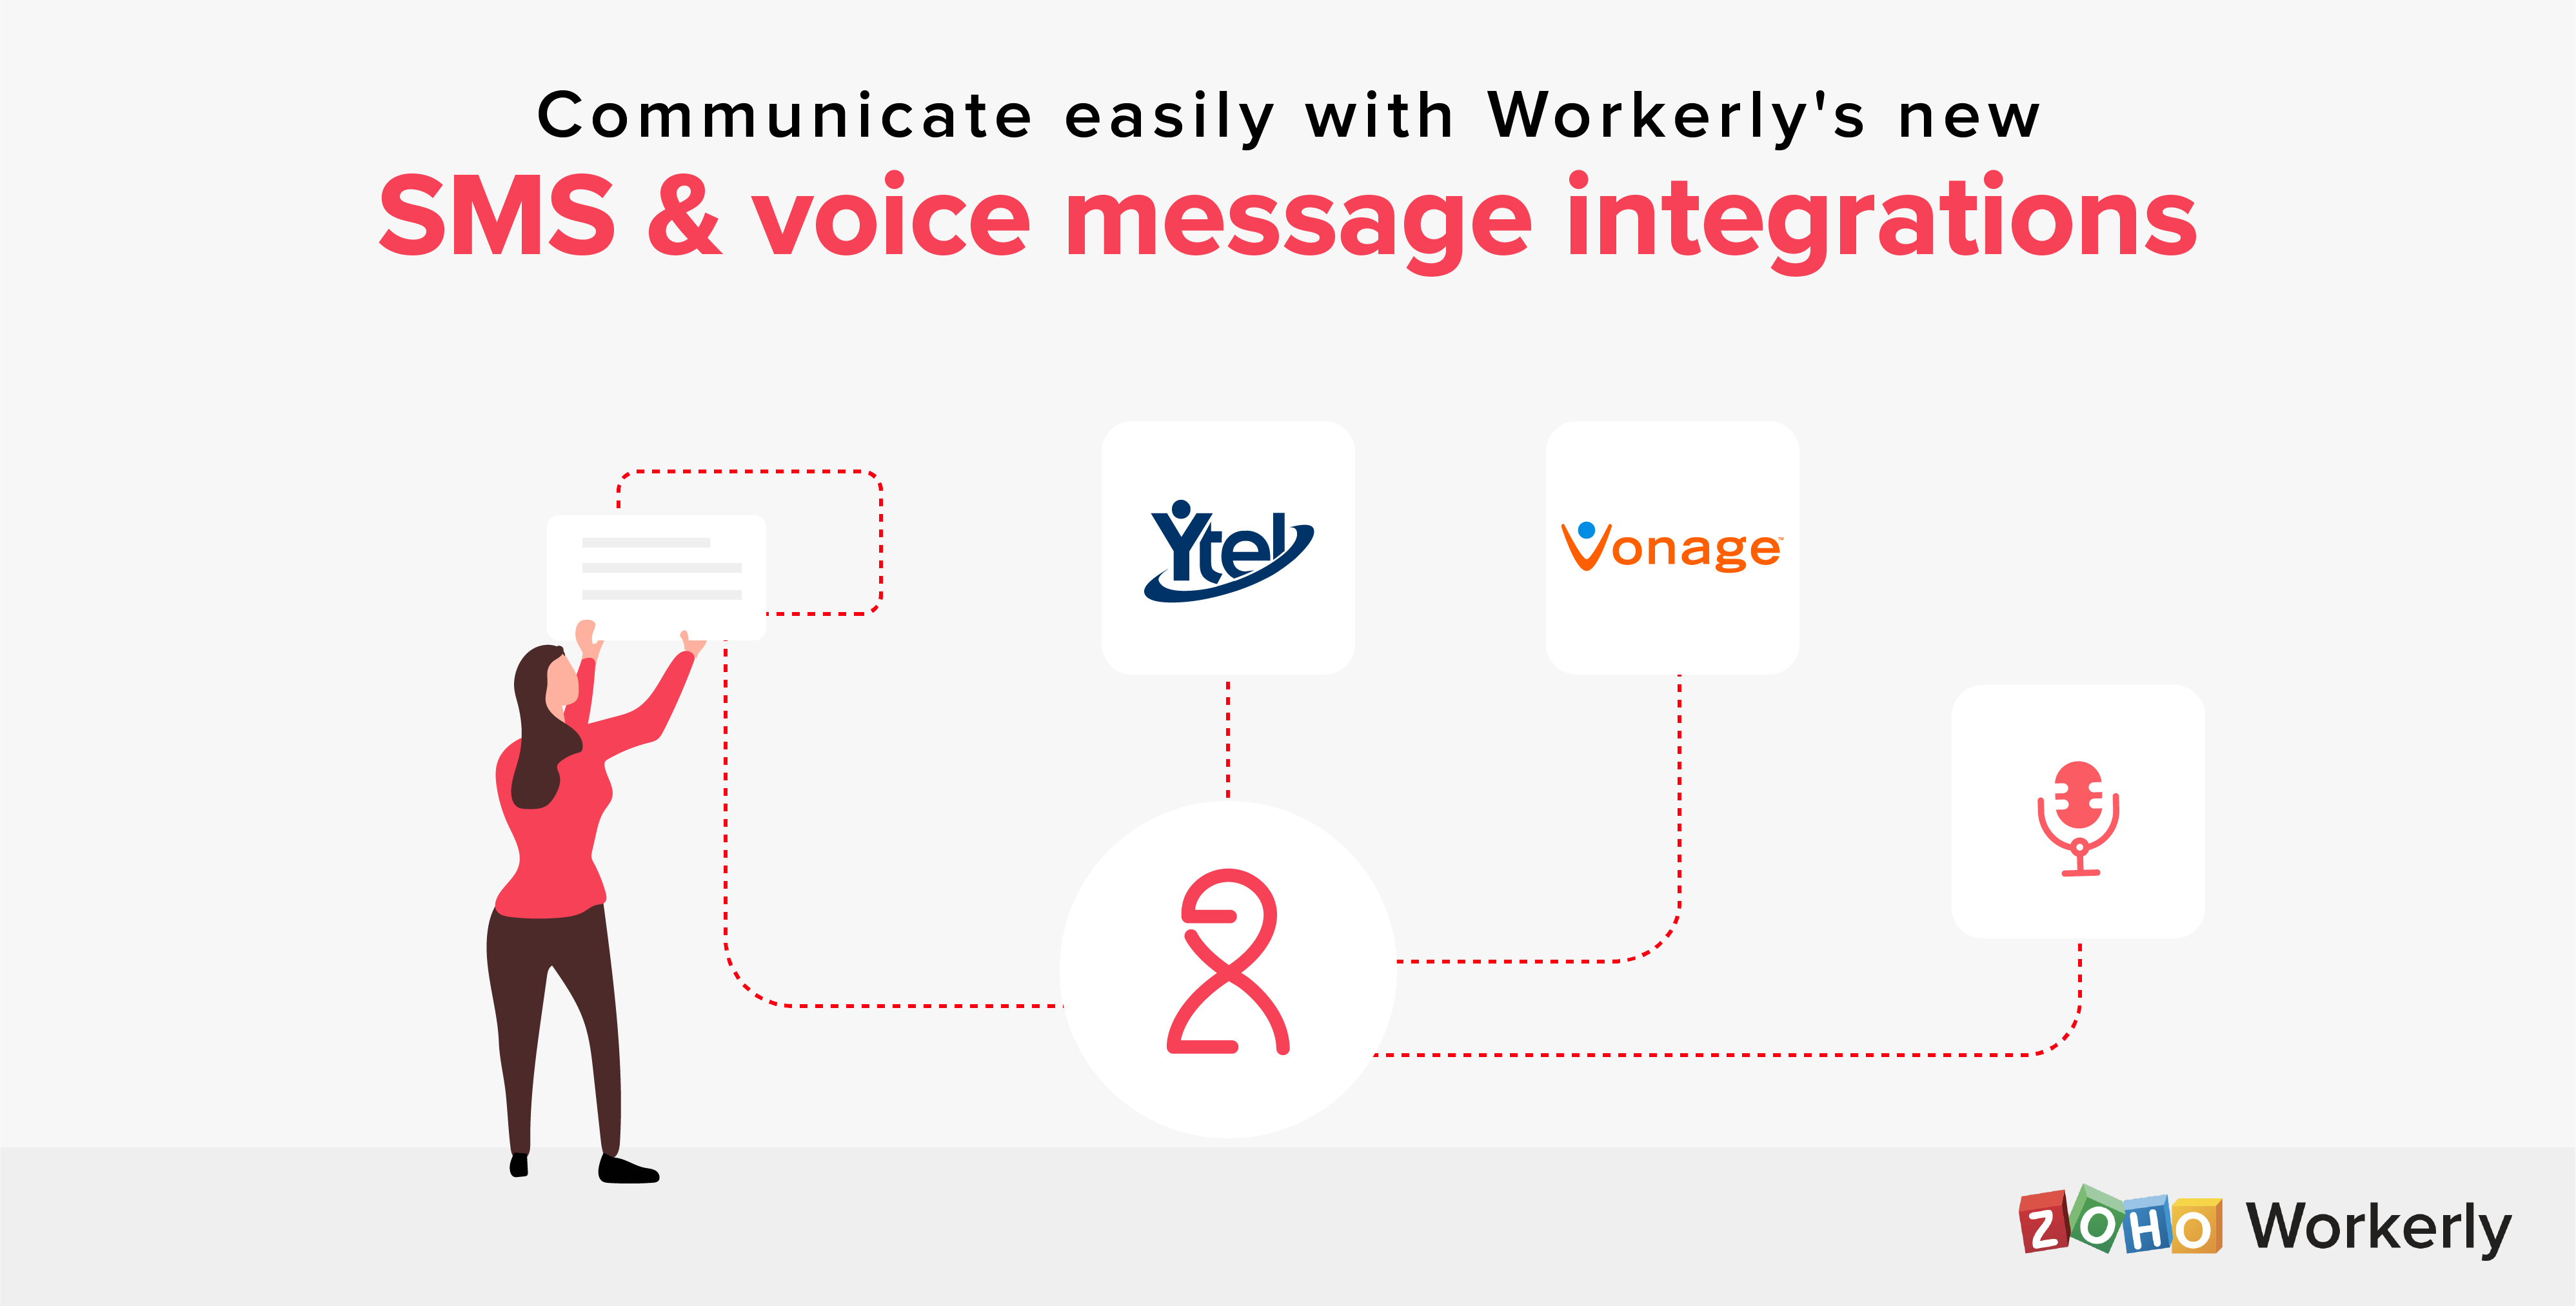 Zoho Workerly integrates with Ytel & Vonage